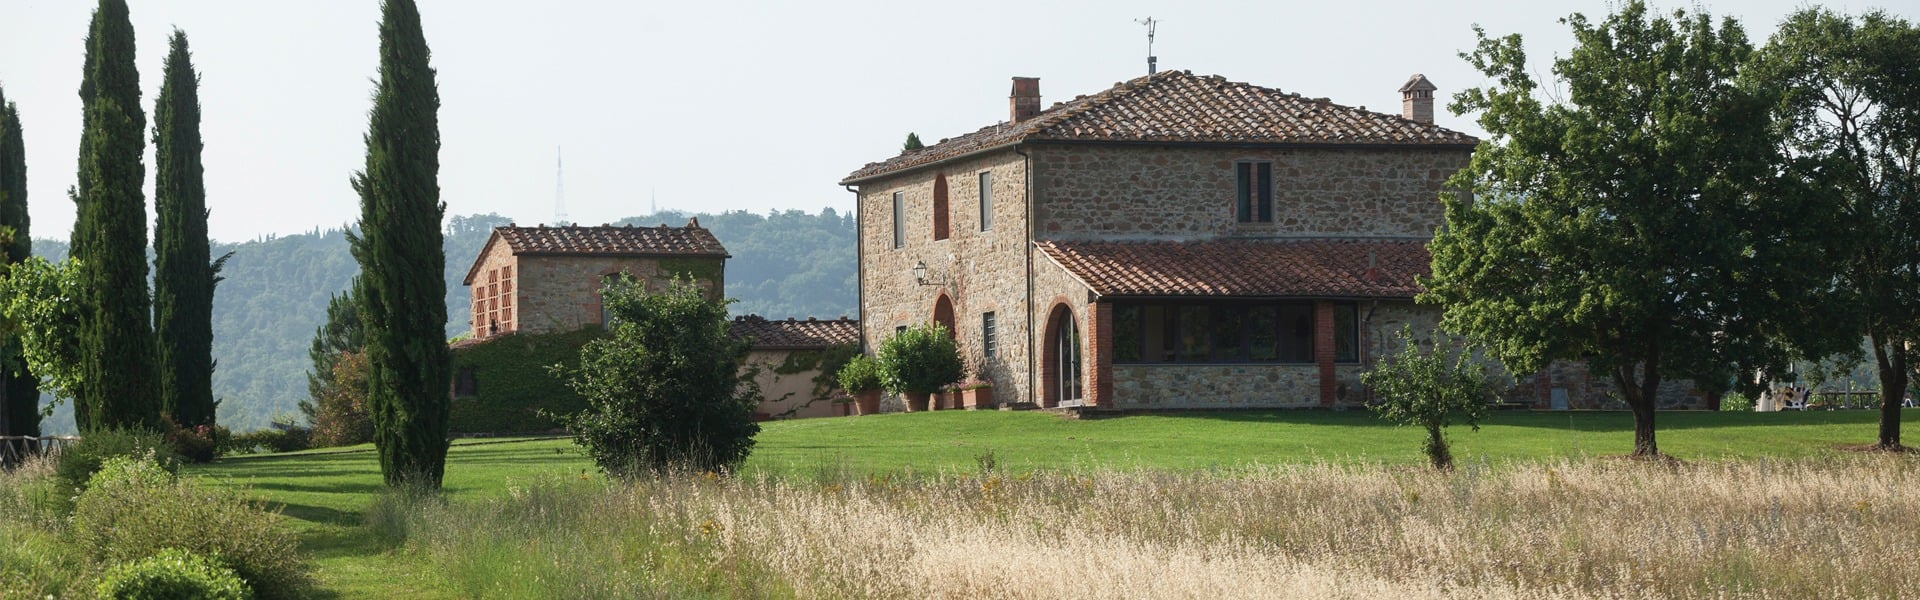 Beautiful villa in the Italian countryside.